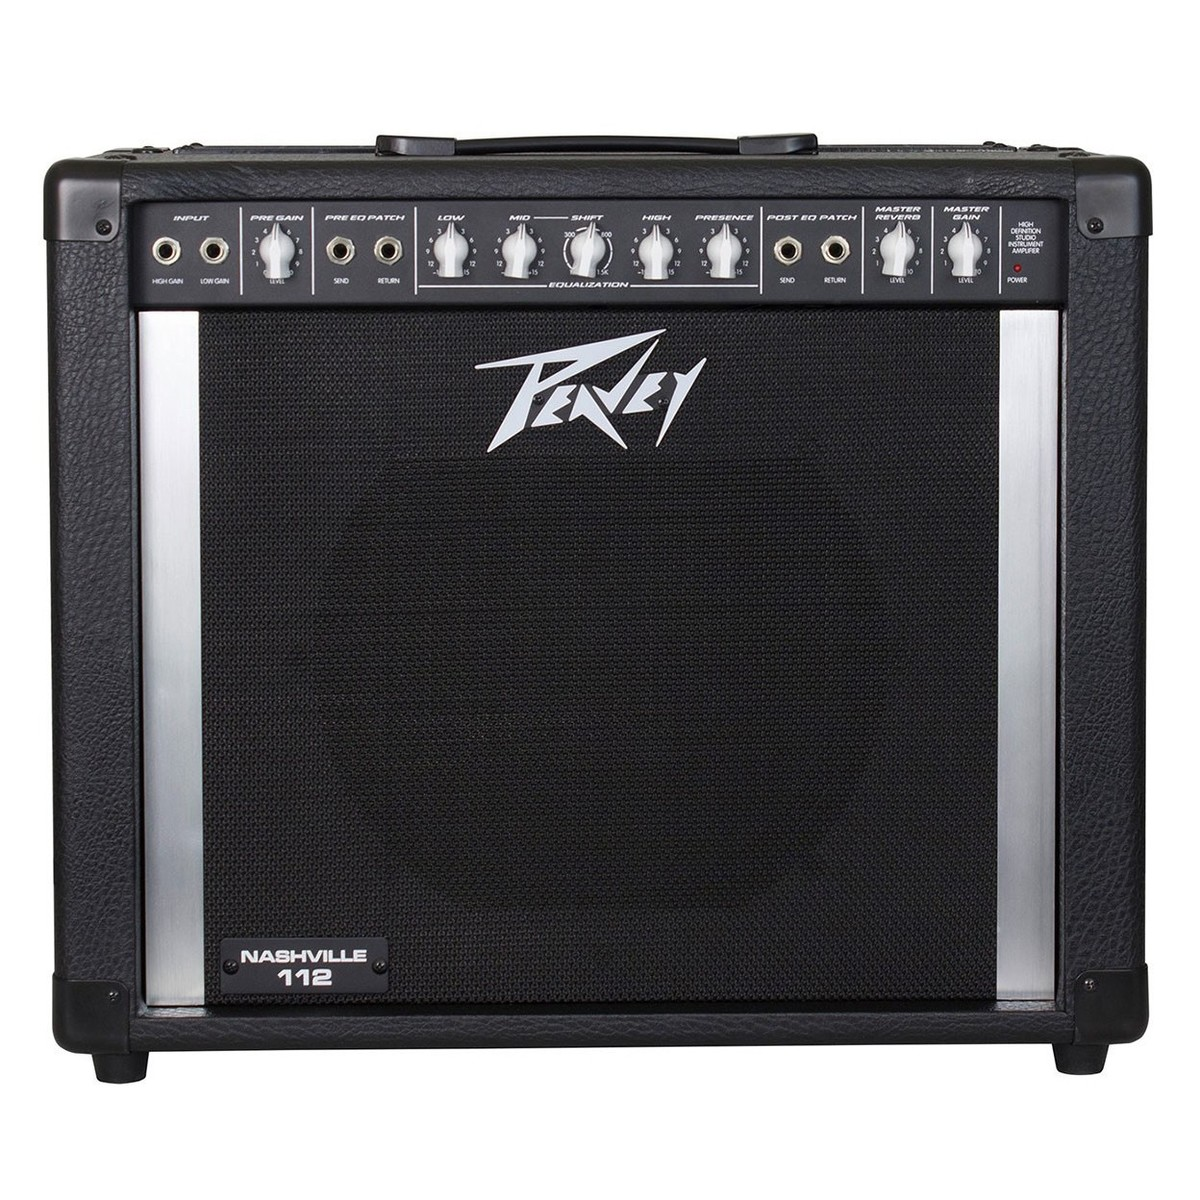 Click to view product details and reviews for Peavey Nashville 112 Pedal Steel Combo.